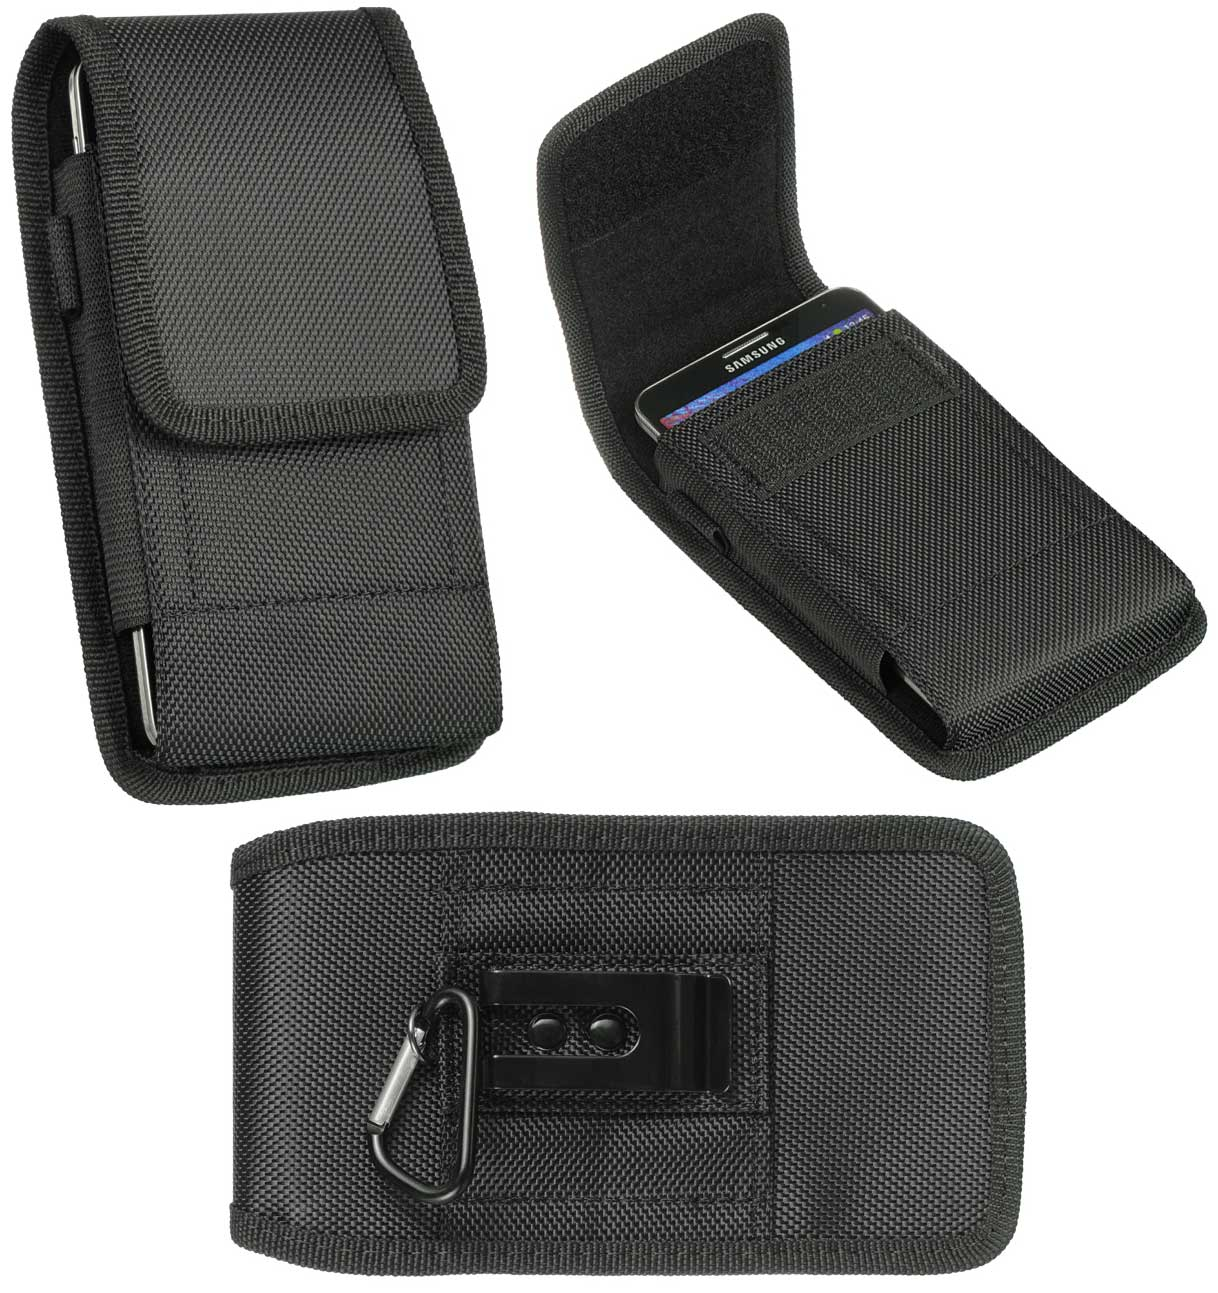 Asus PadFone X mini Neoprene Nylon Case Pouch Clip Hook Black